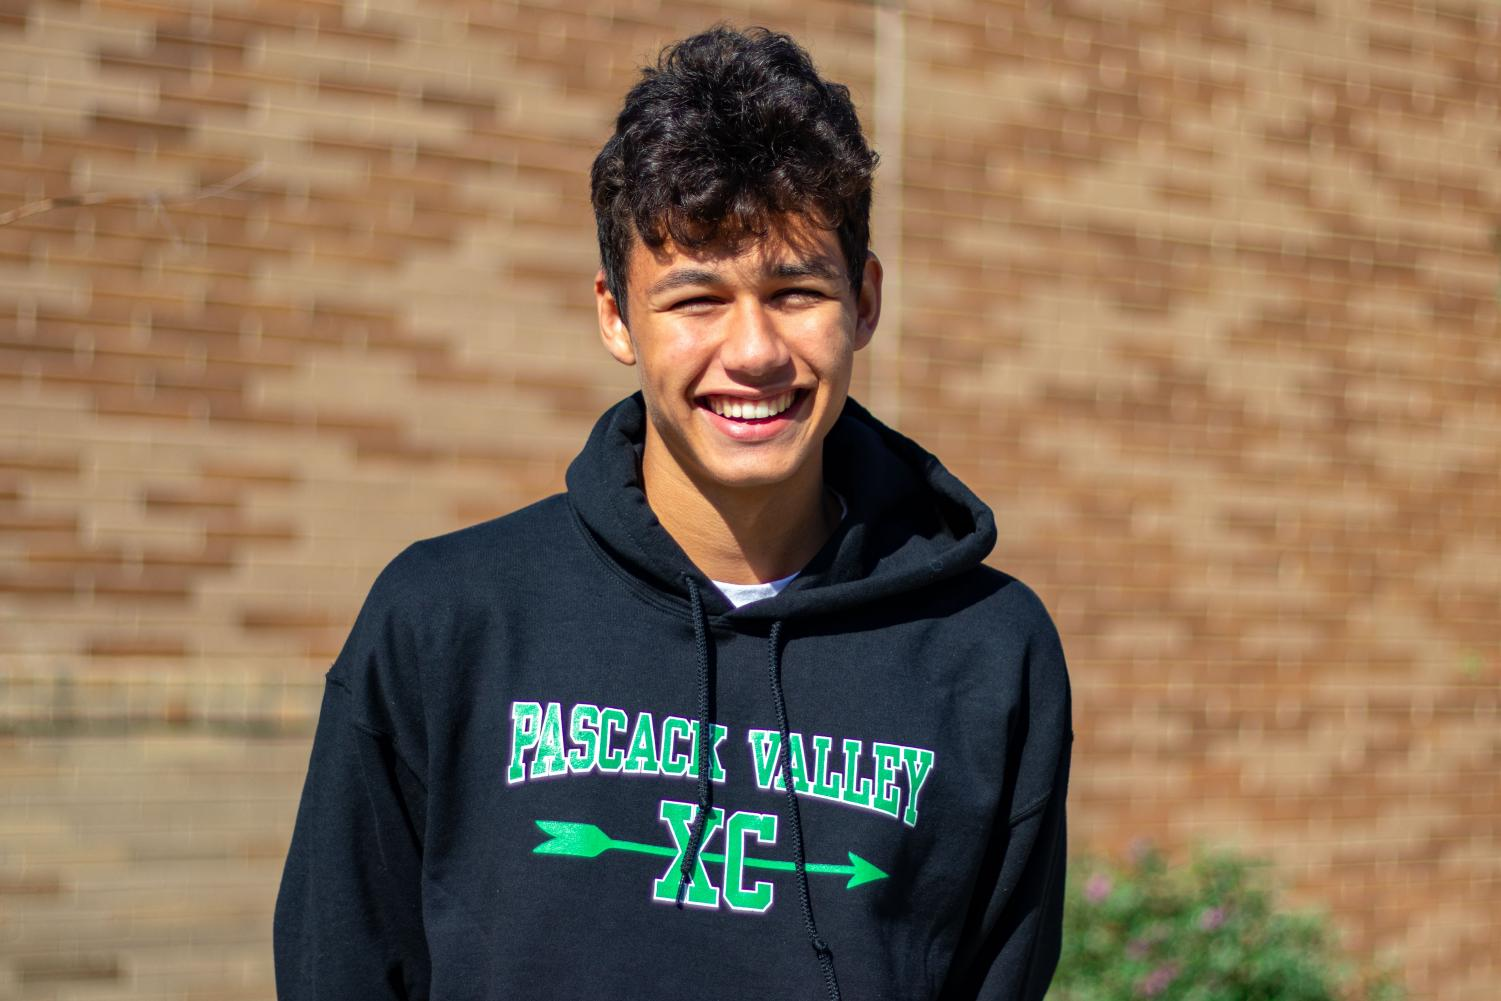 John Edwards is the Smoke Signal's Athlete of Week for the week of October 15. Edwards runs Cross Country at Pascack Valley.